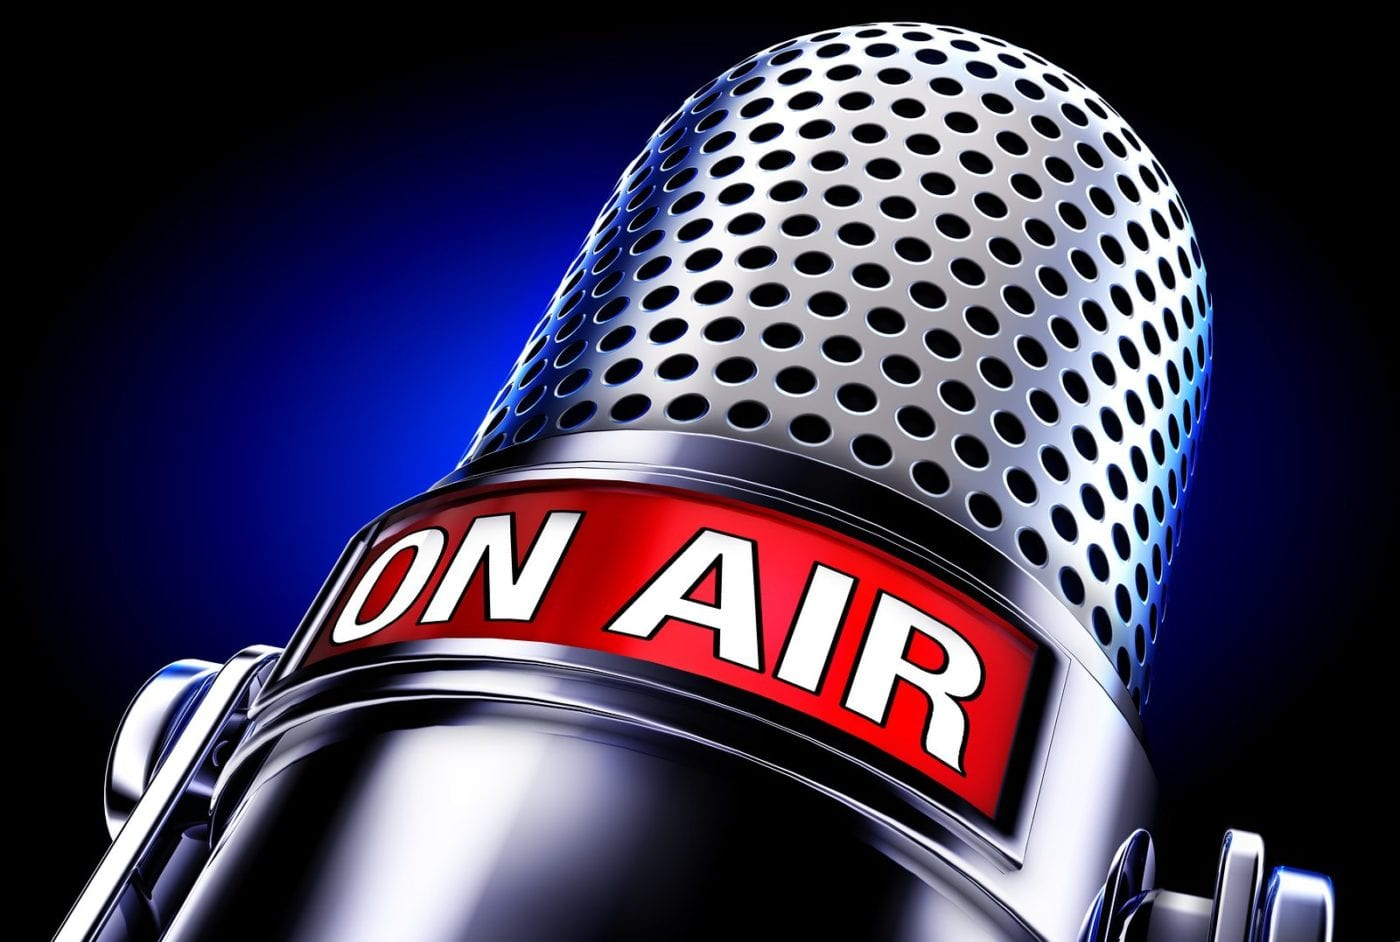 Planning an effective radio campaign